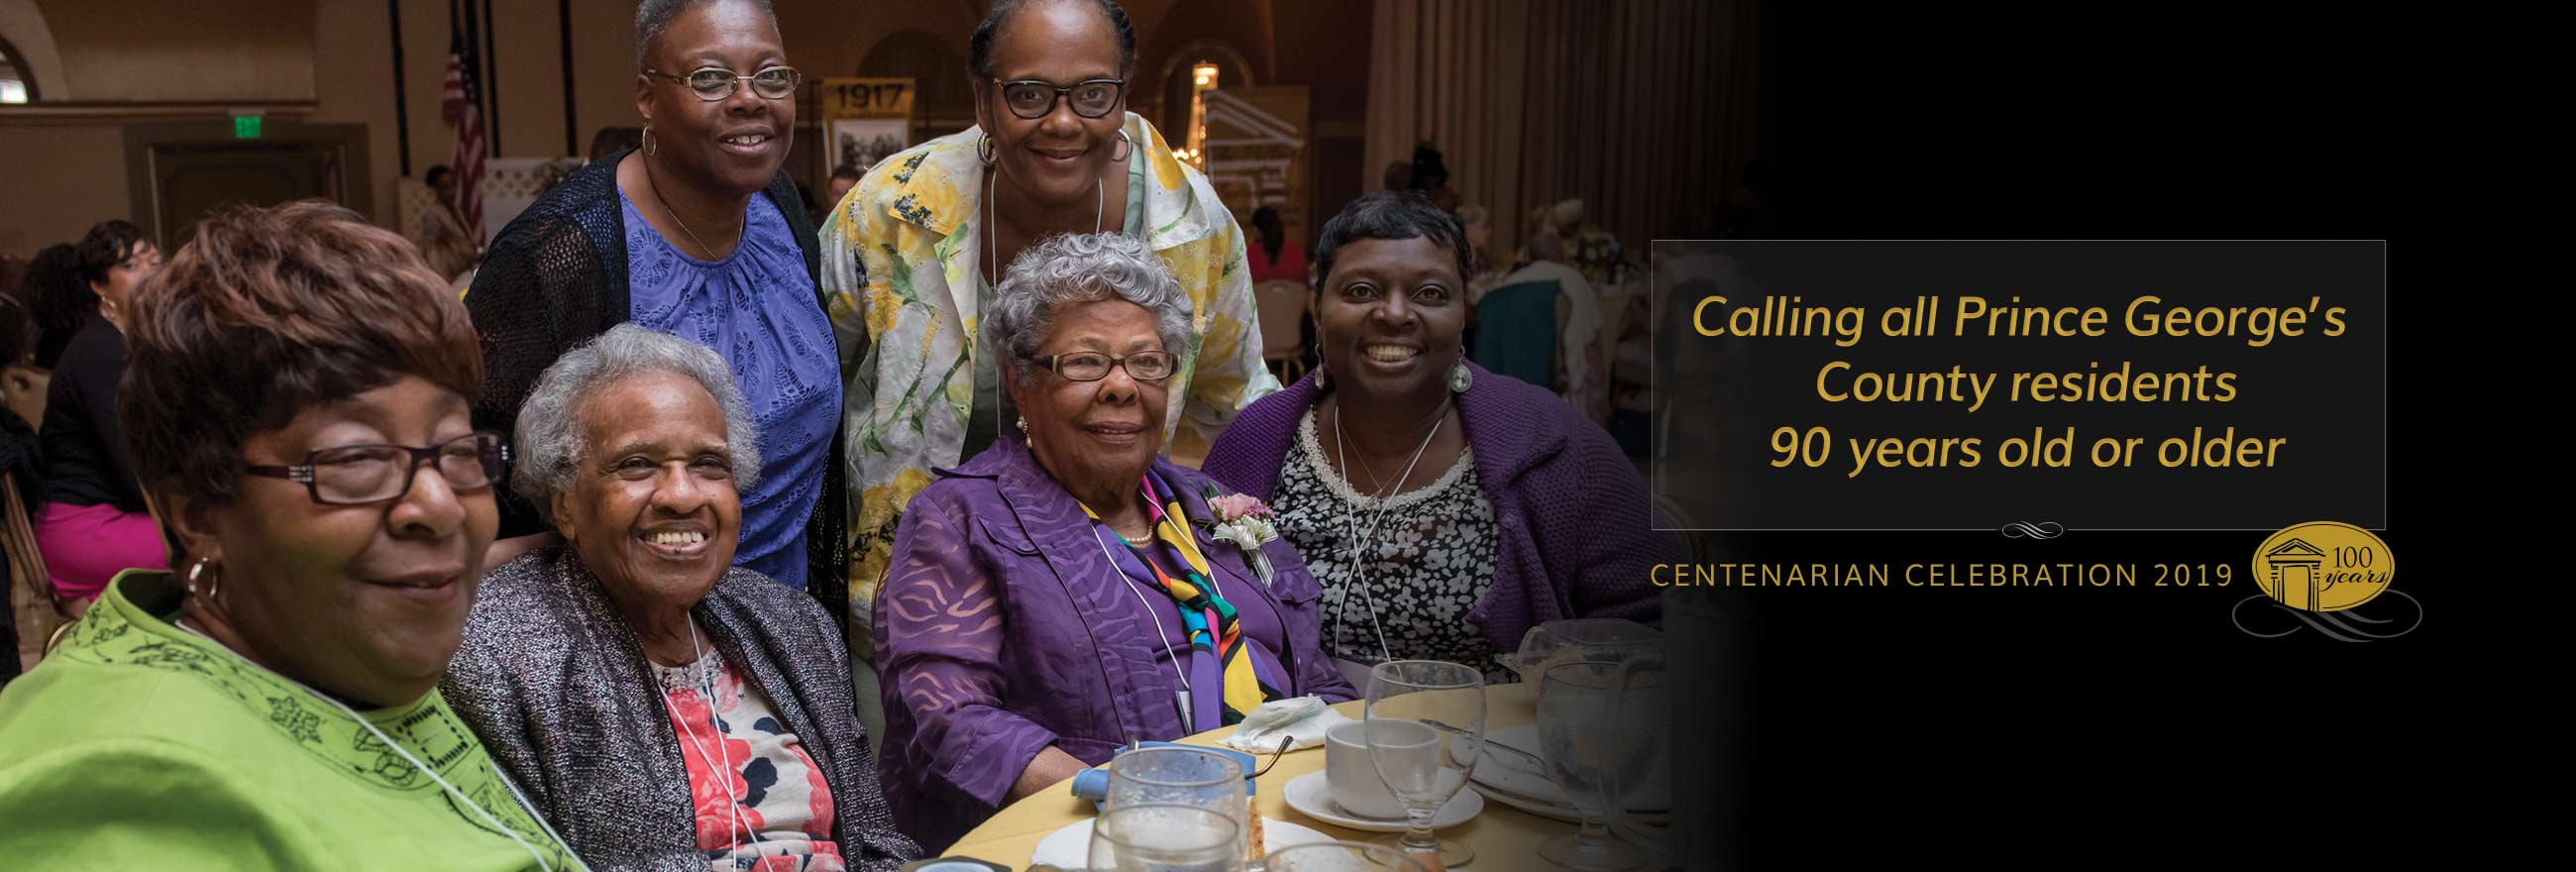 Calling all Prince George's County residents 90 years or older